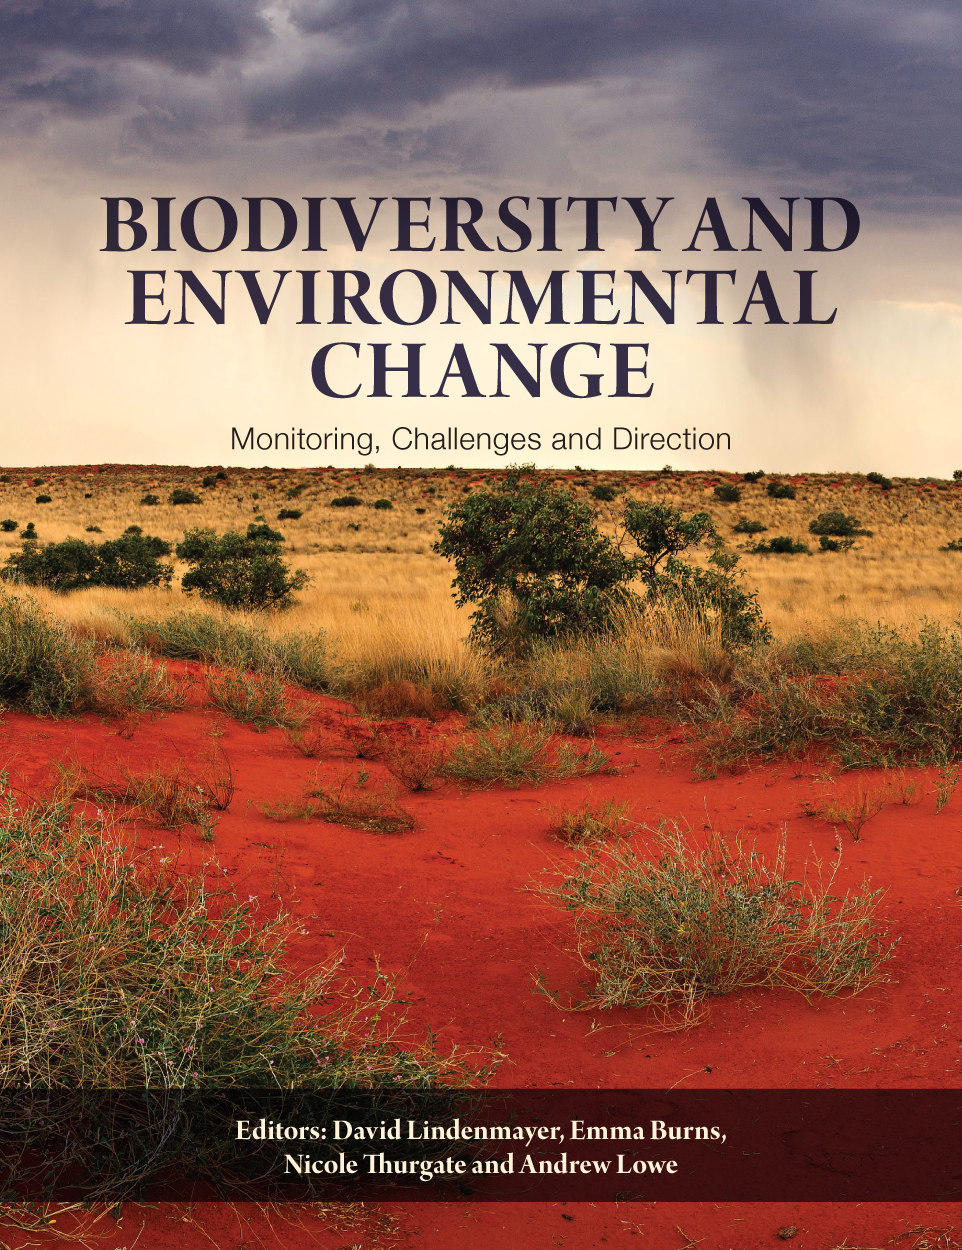 Cover image of Biodiversity and Environmental Change, featuring a desert v